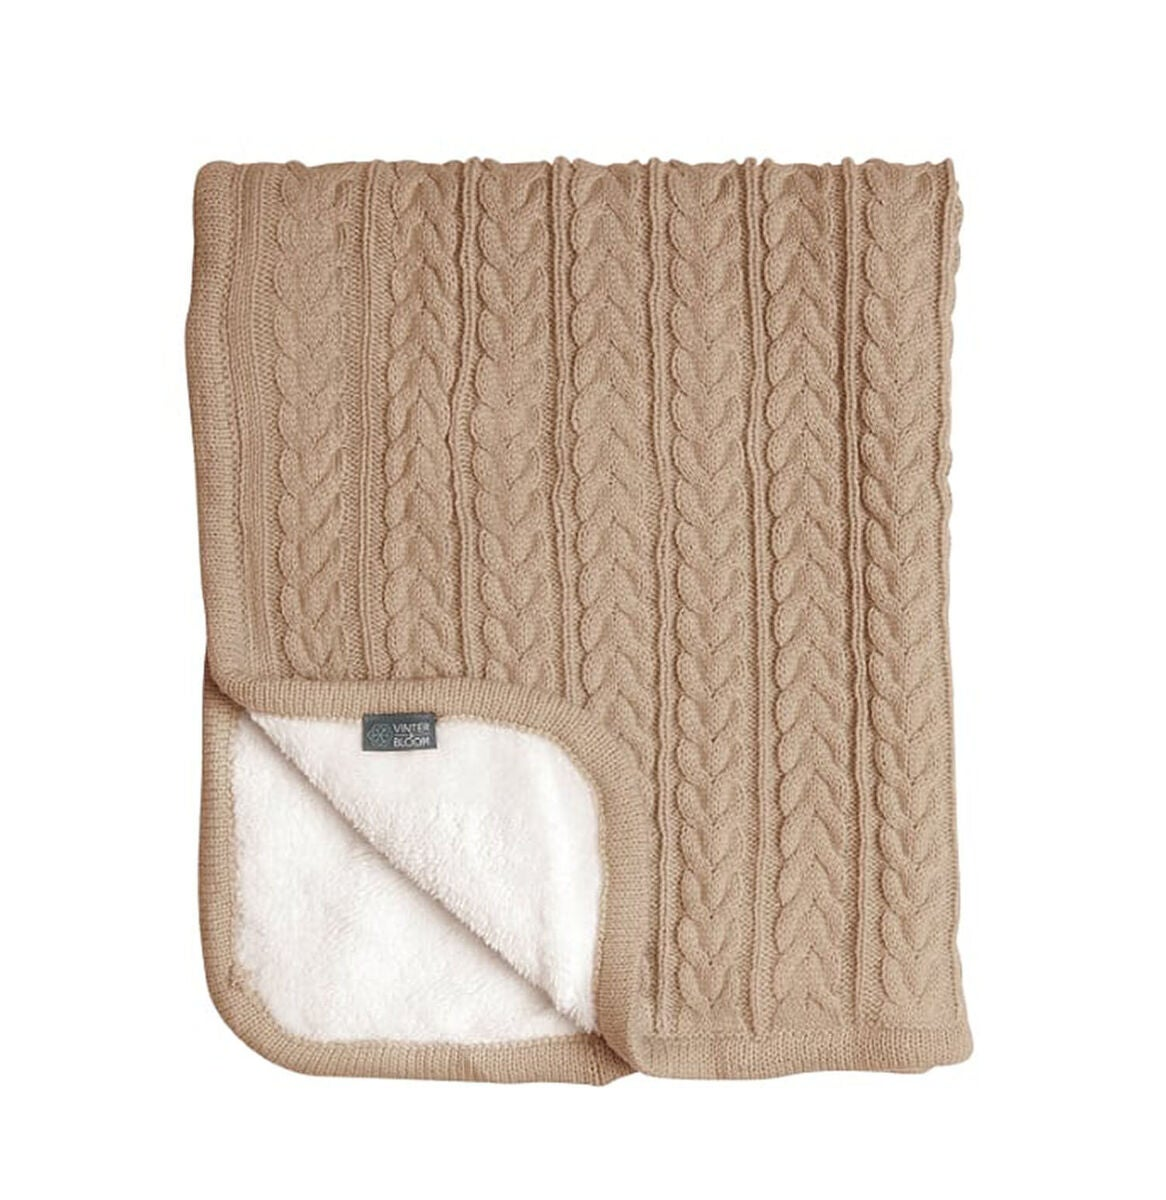 Vinter & Bloom Filt Cuddly, Almond Beige